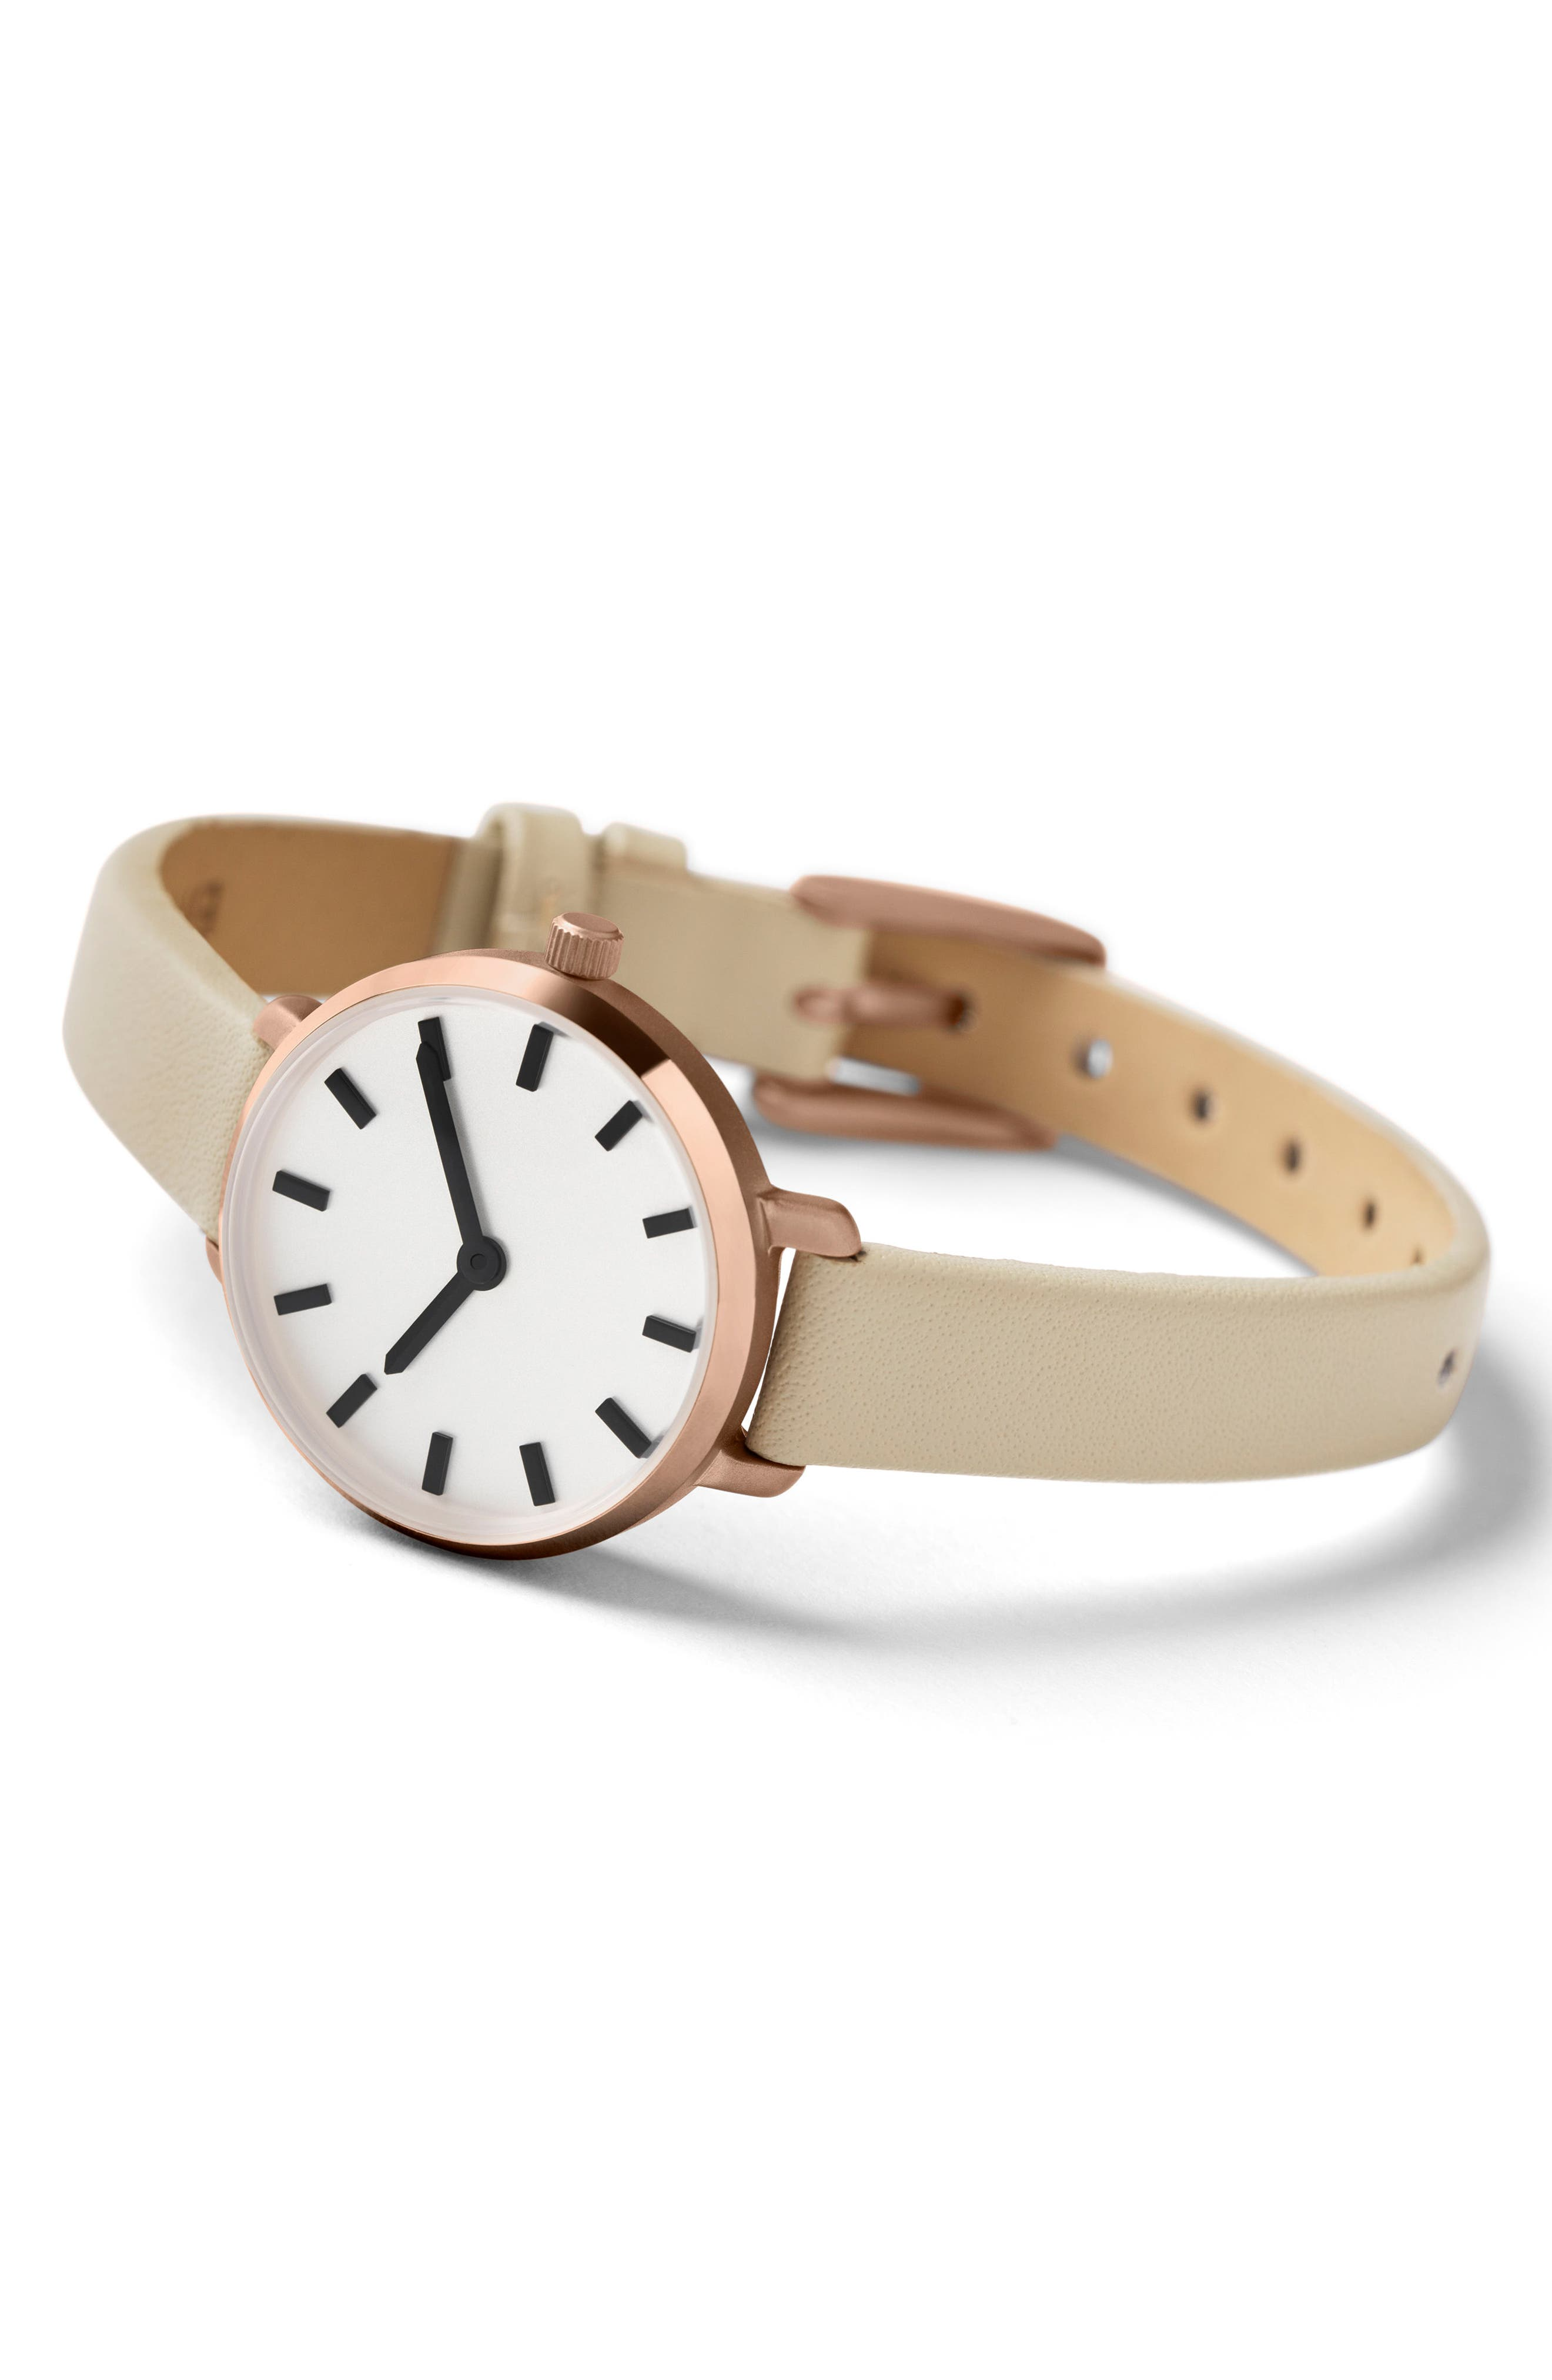 Beverly Round Leather Strap Watch, 26mm,                             Alternate thumbnail 2, color,                             GREY/ ROSE GOLD